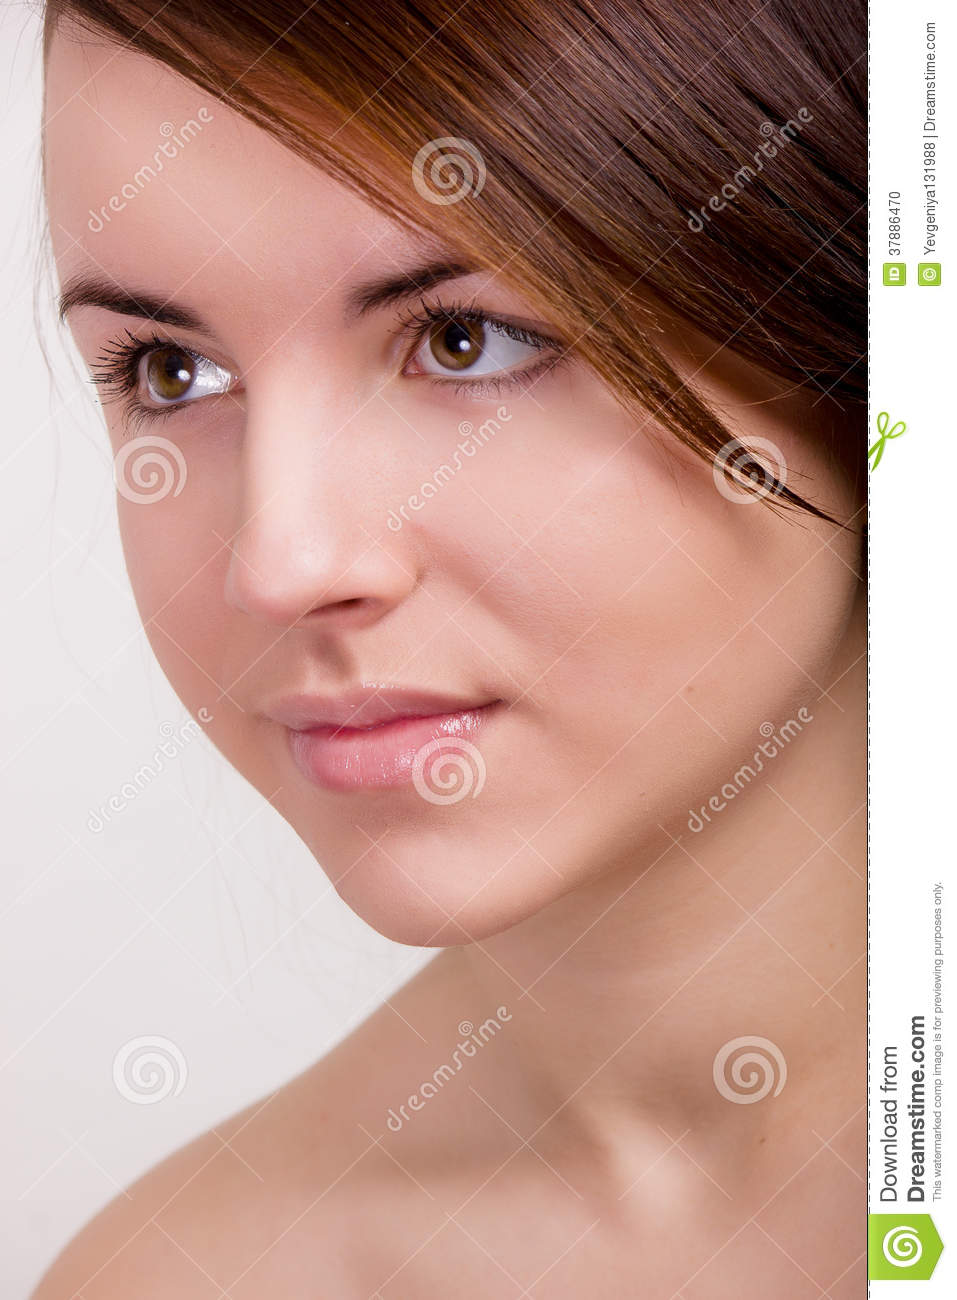 Natural portrait of a beautiful young woman